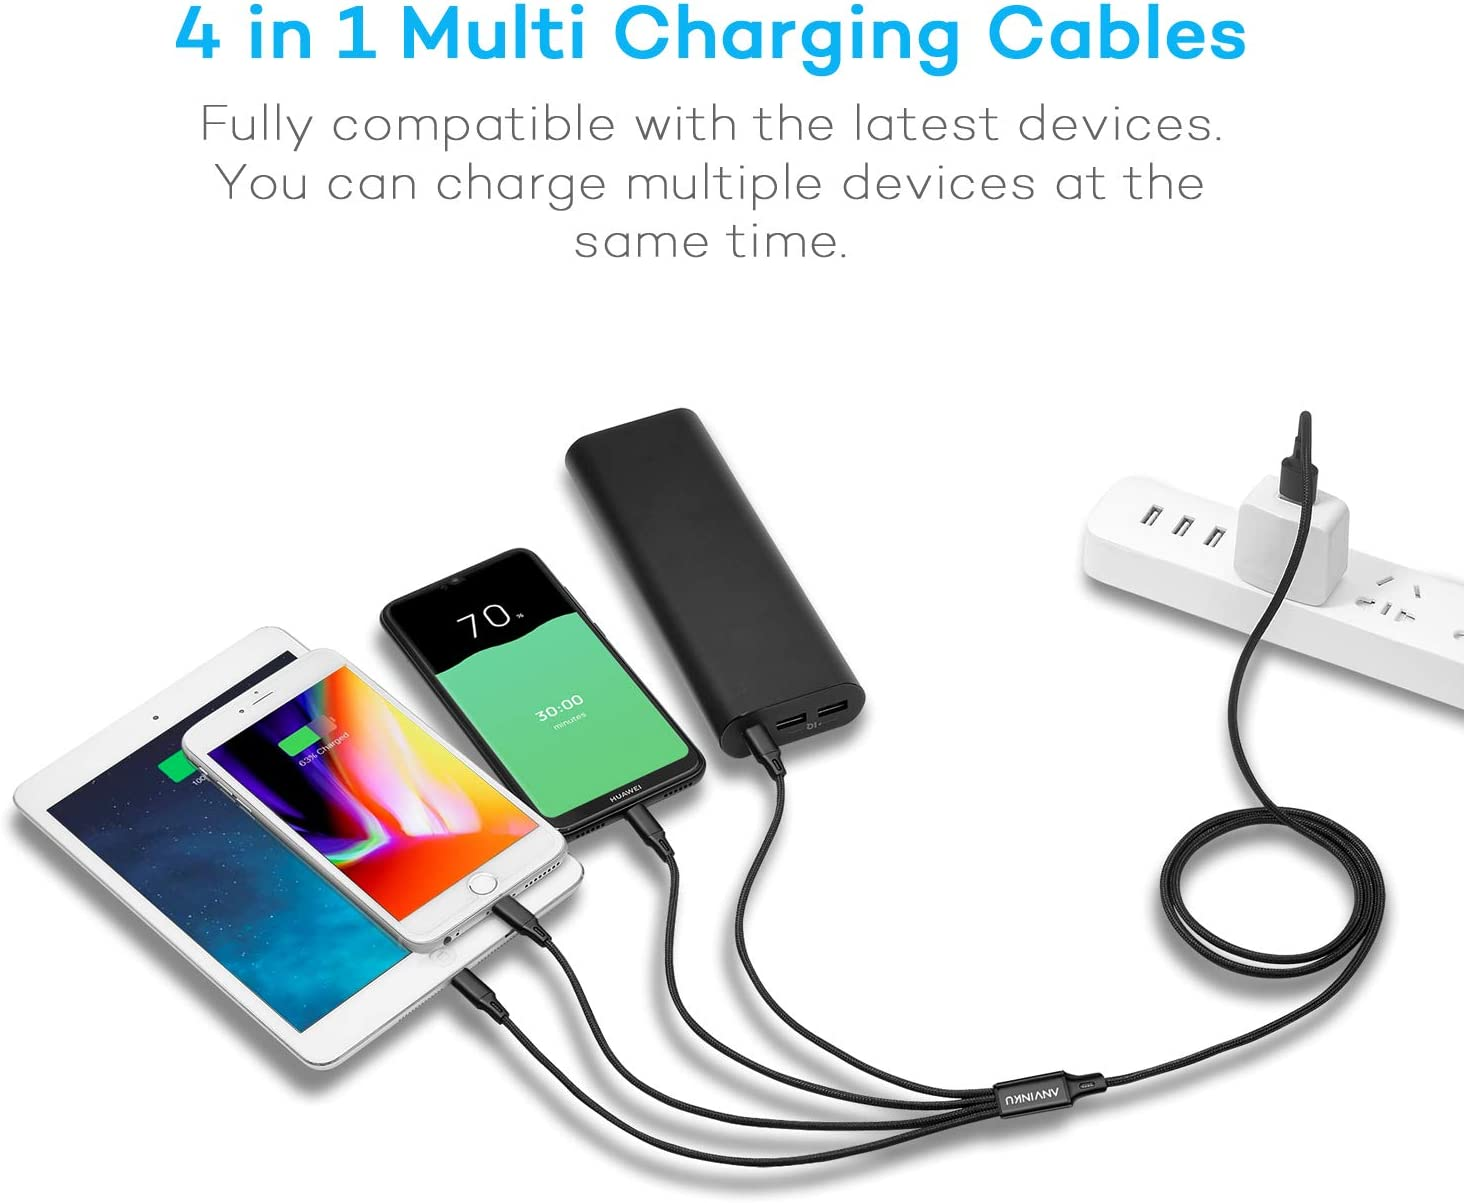 Fejarx Jojos Bizarre Adventure Multi USB Retractable Charging Cable 4ft 3 in 1 Multiple Charger Cord Adapter Micro USB Port Compatible Cell Phones Tablets and More Universal Use B-1